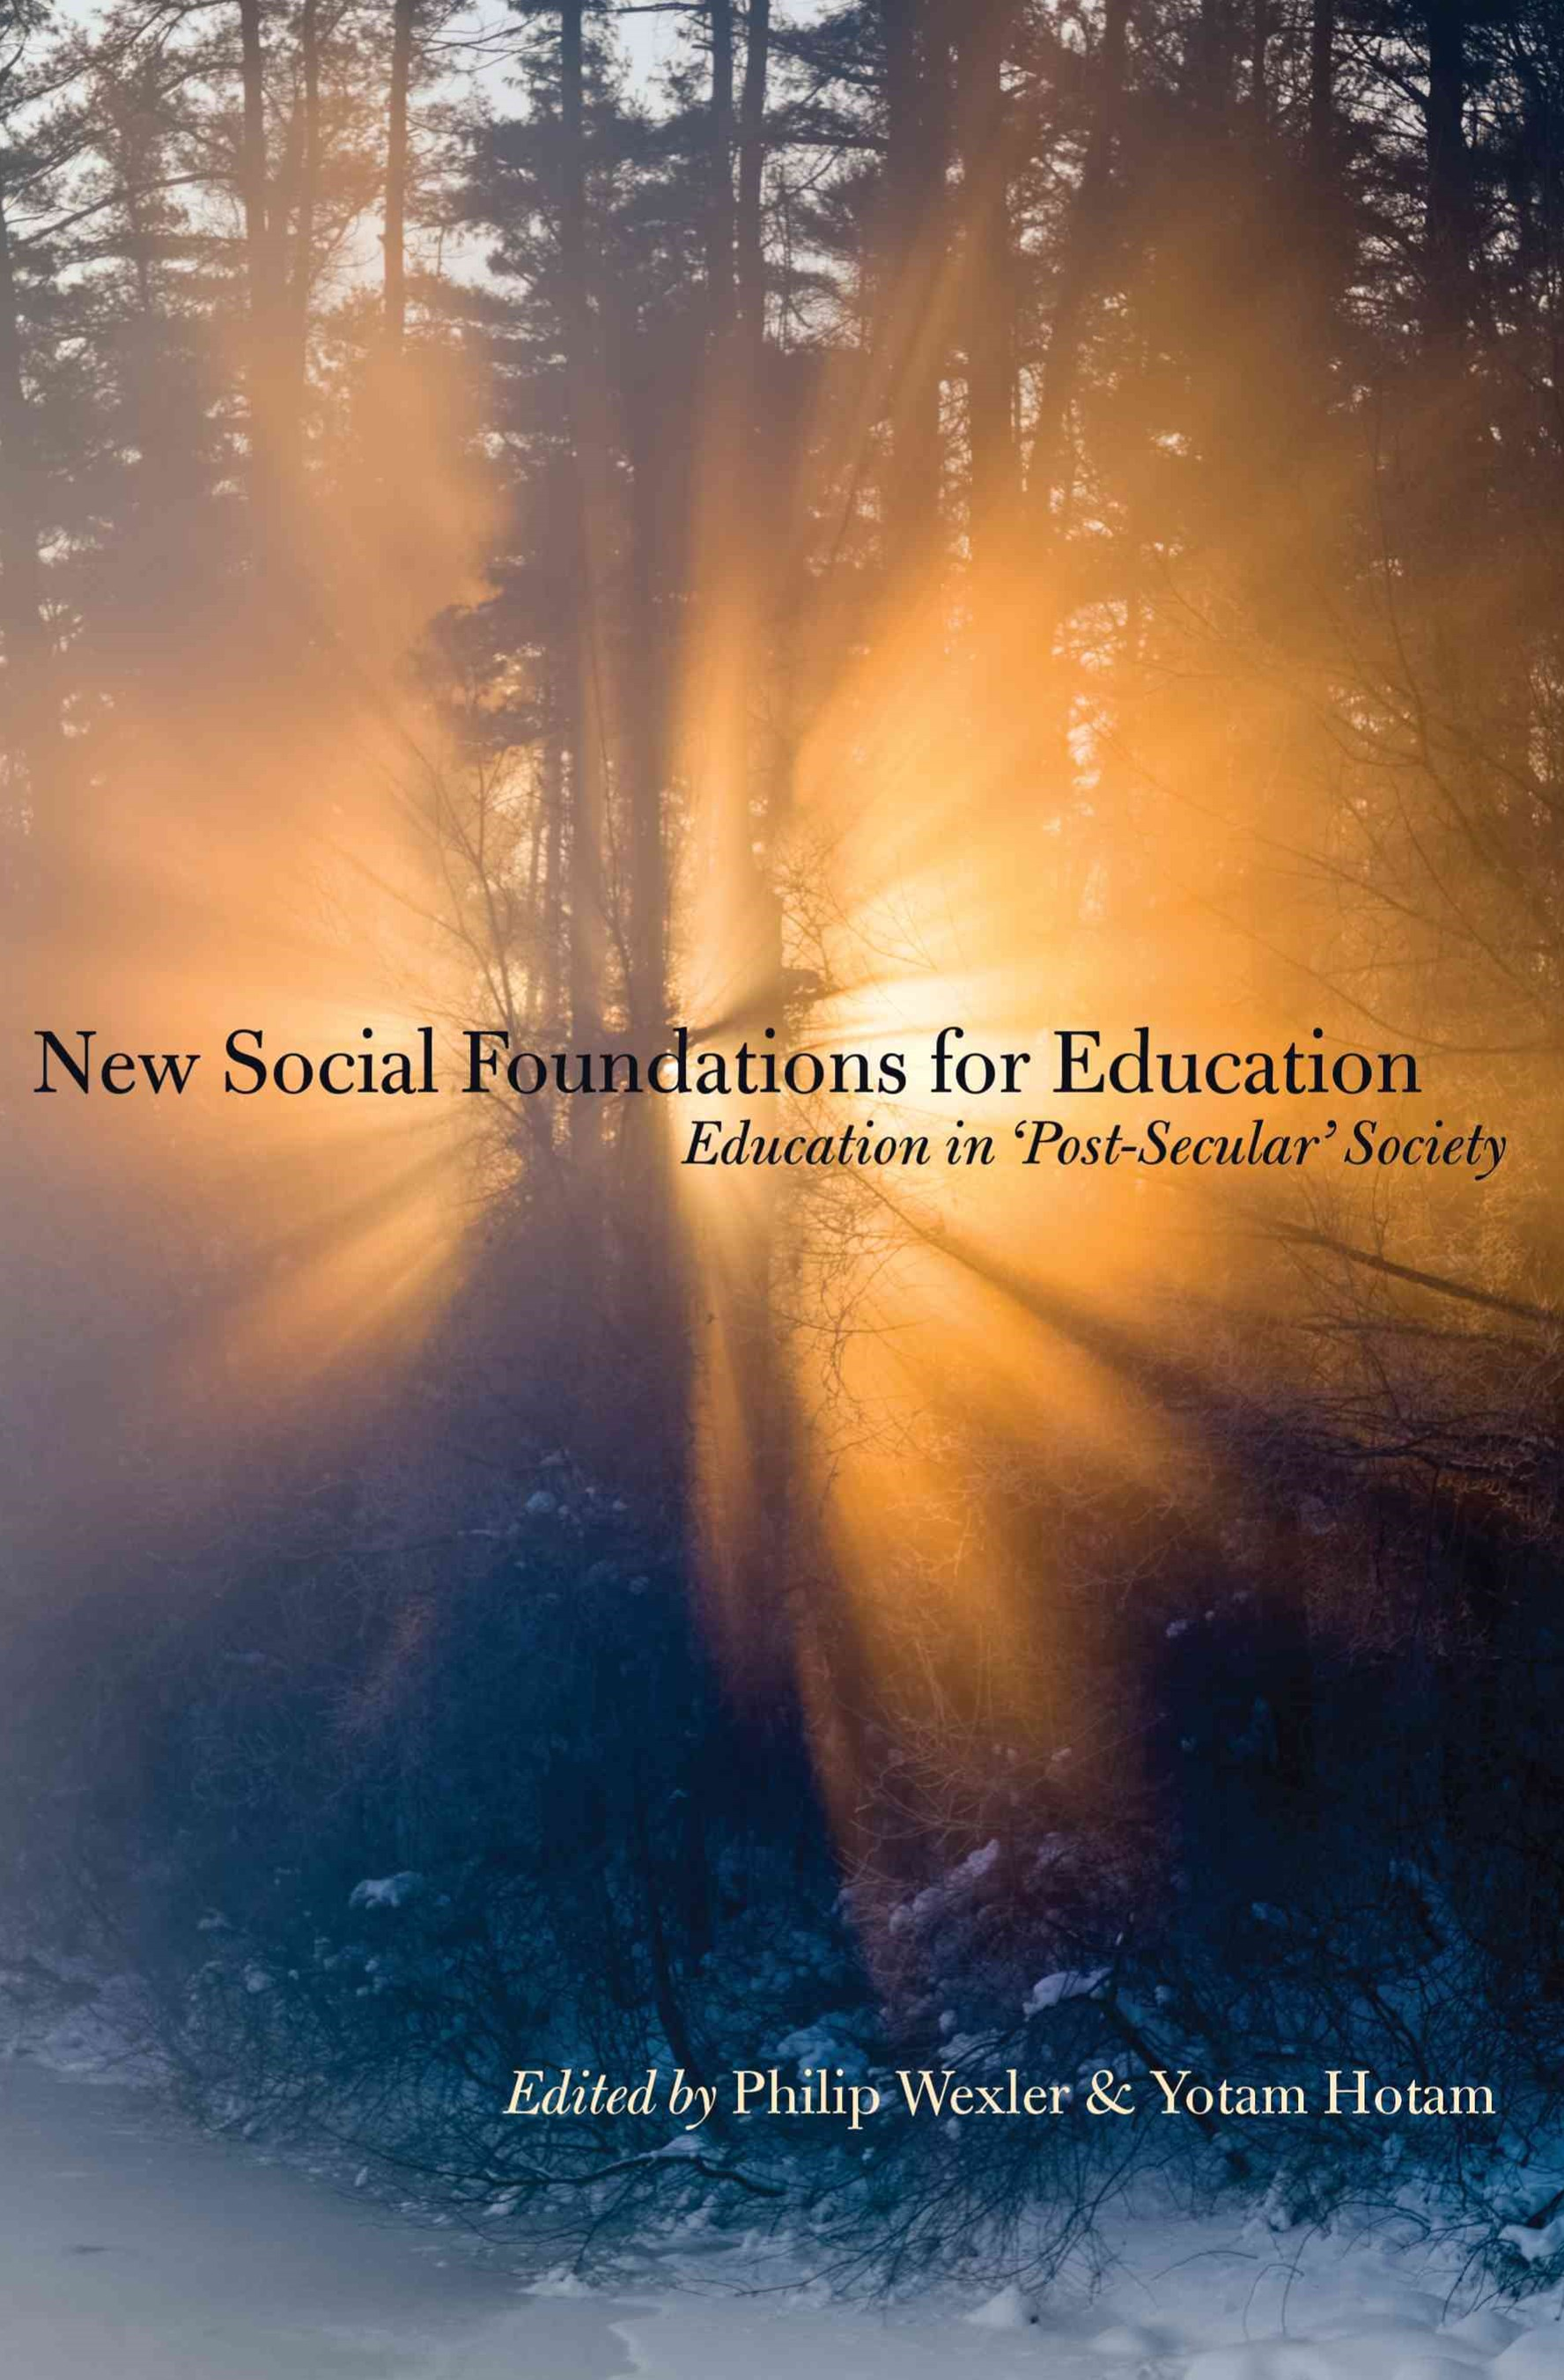 New Social Foundations for Education